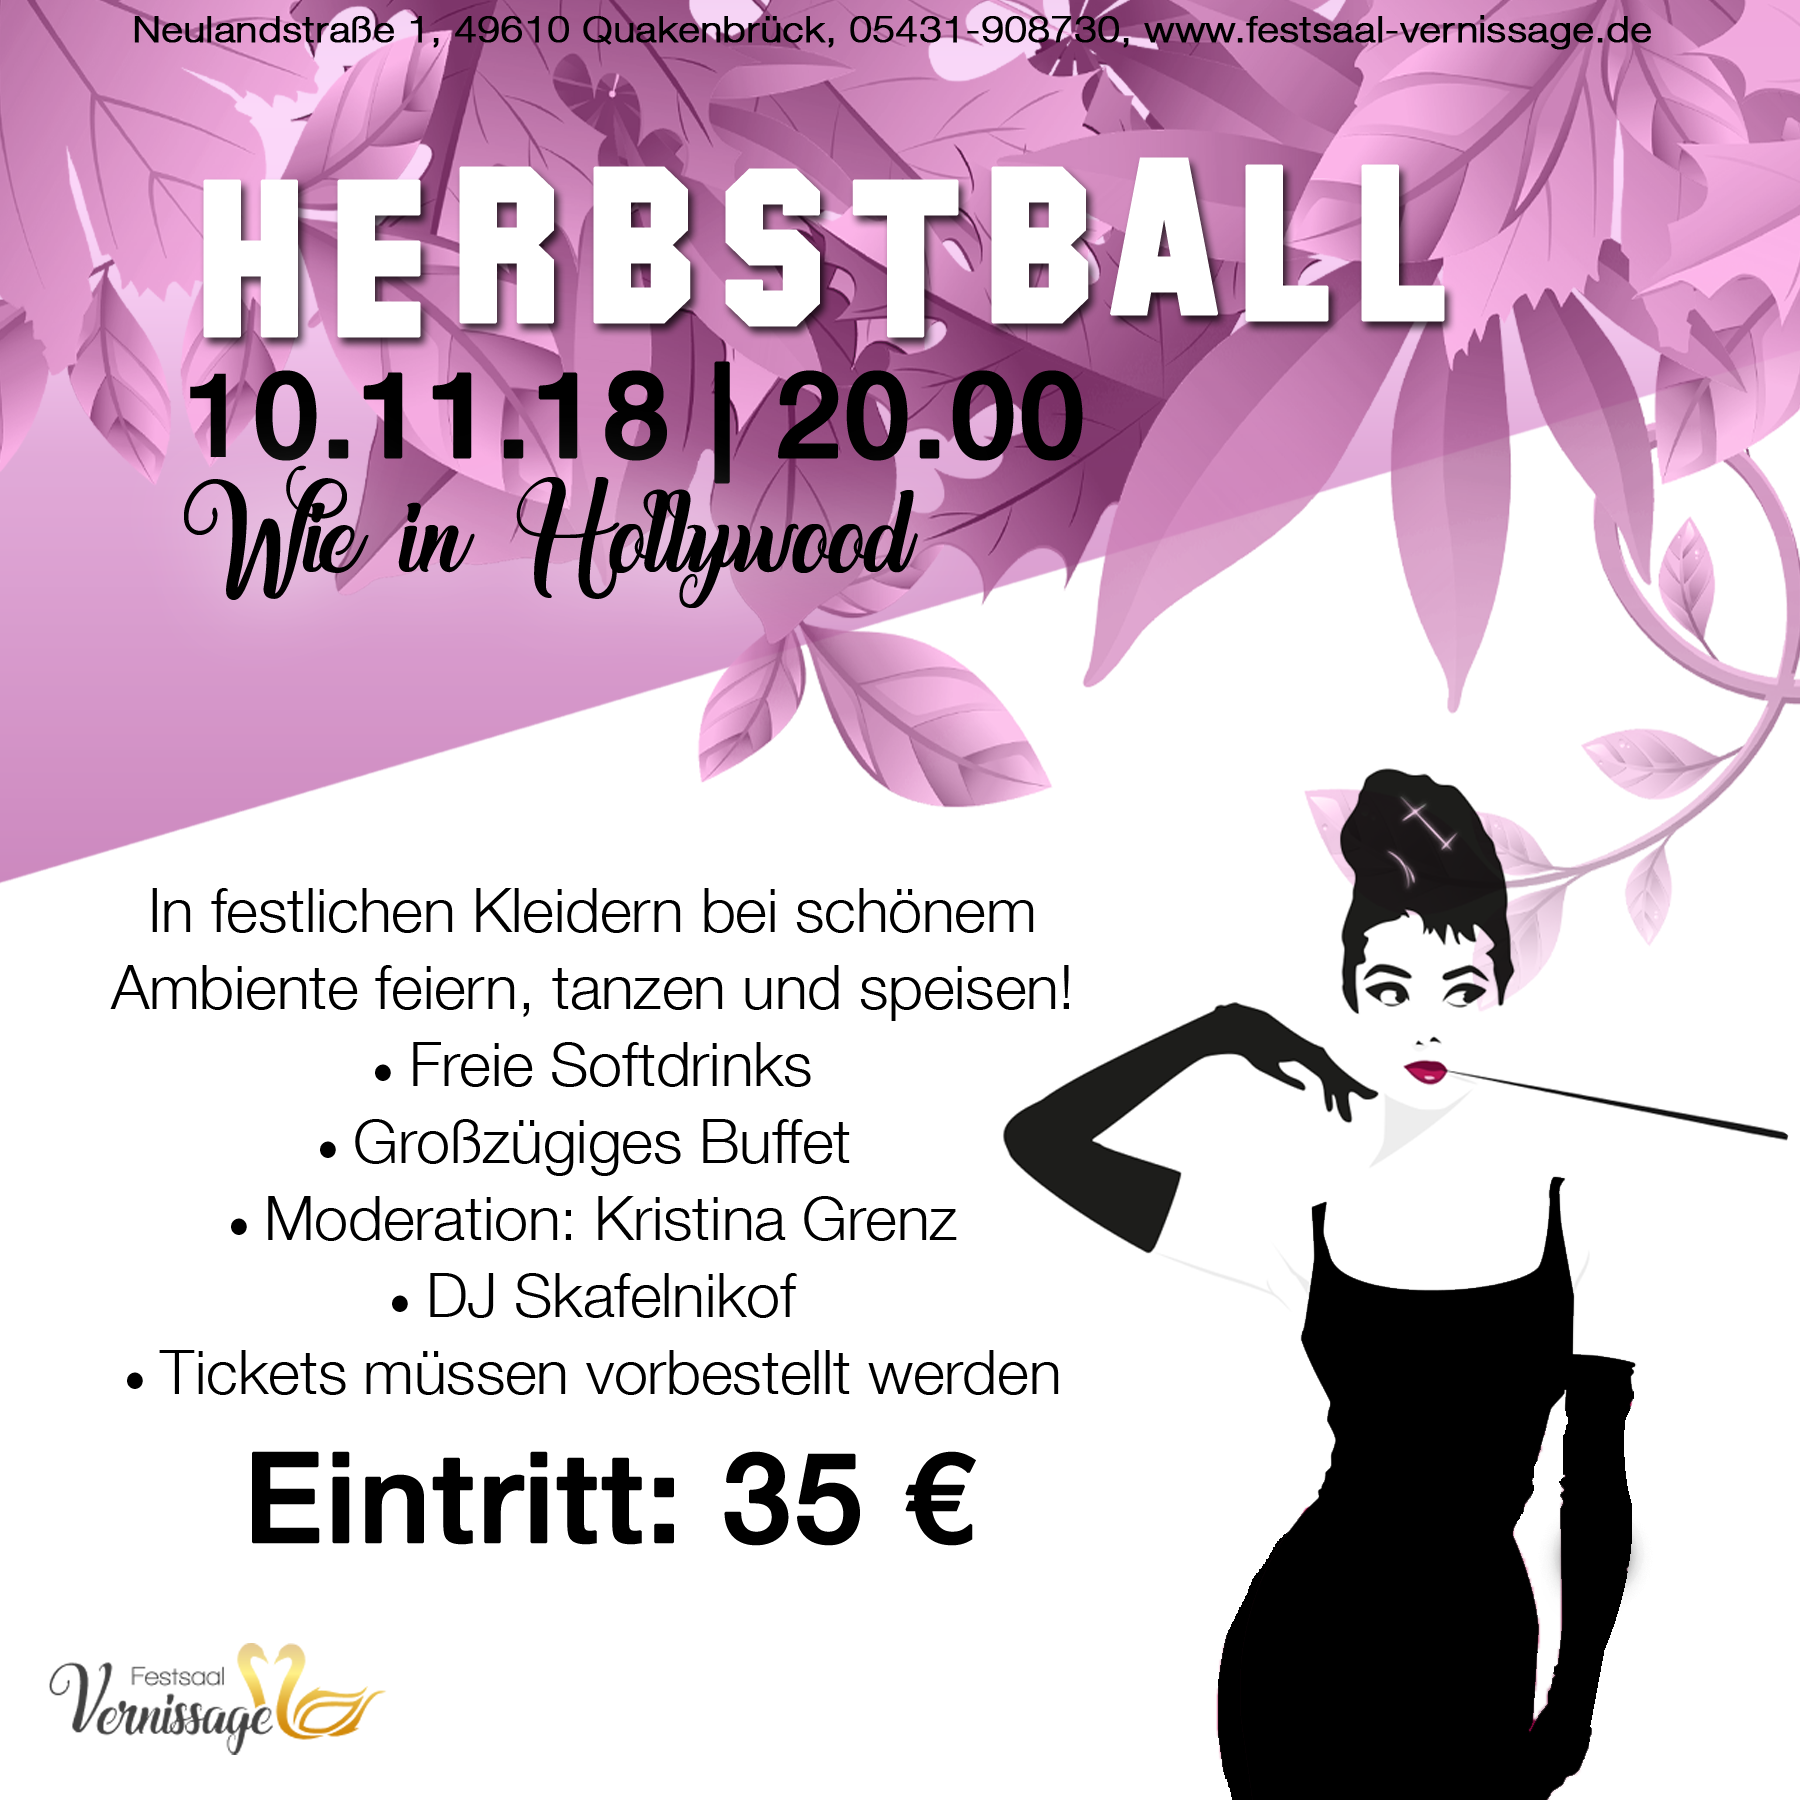 Herbstball